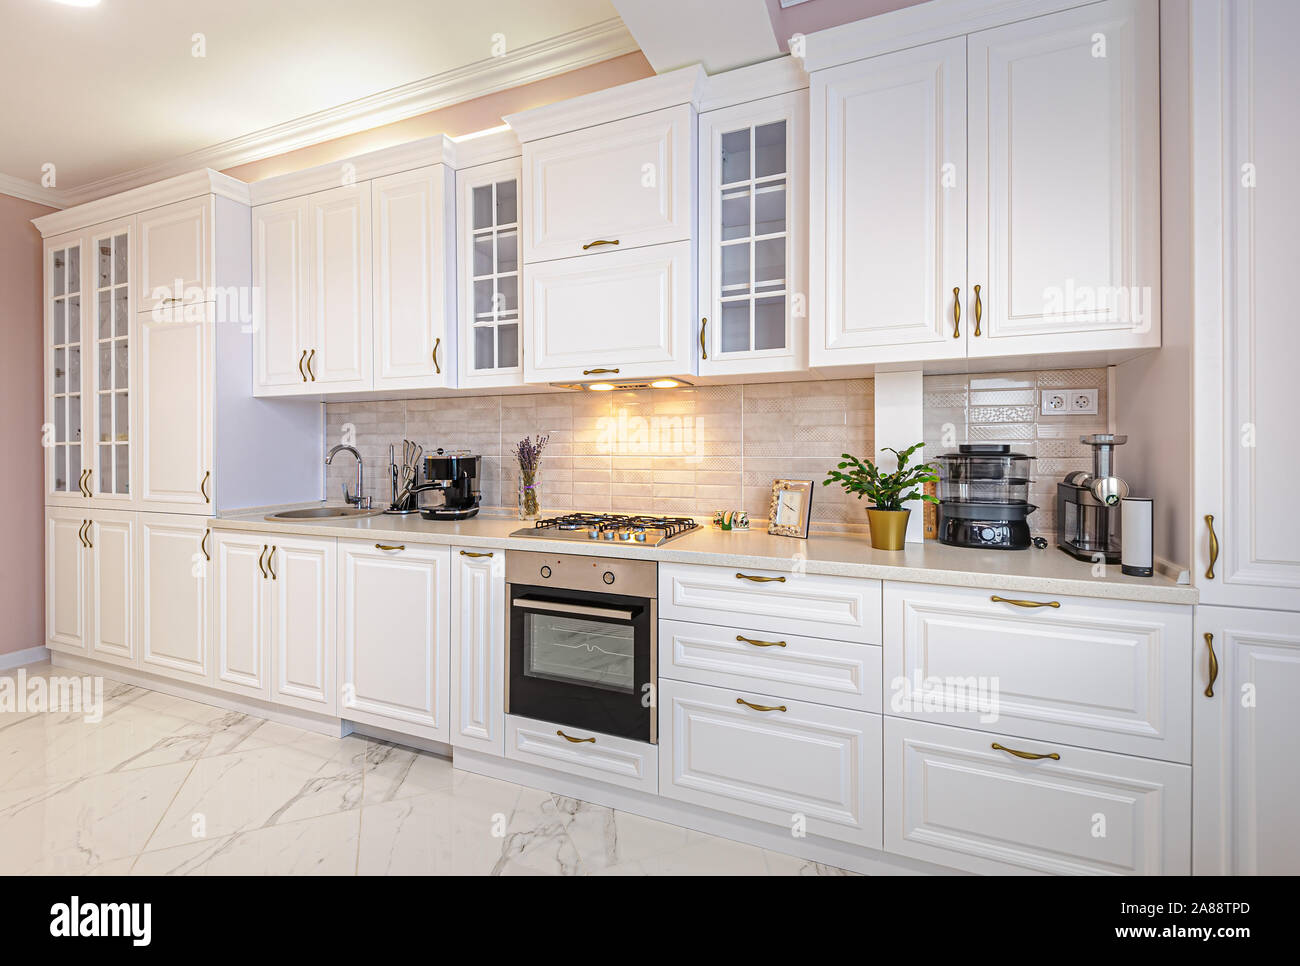 Luxury Modern White Kitchen Interior Stock Photo Alamy